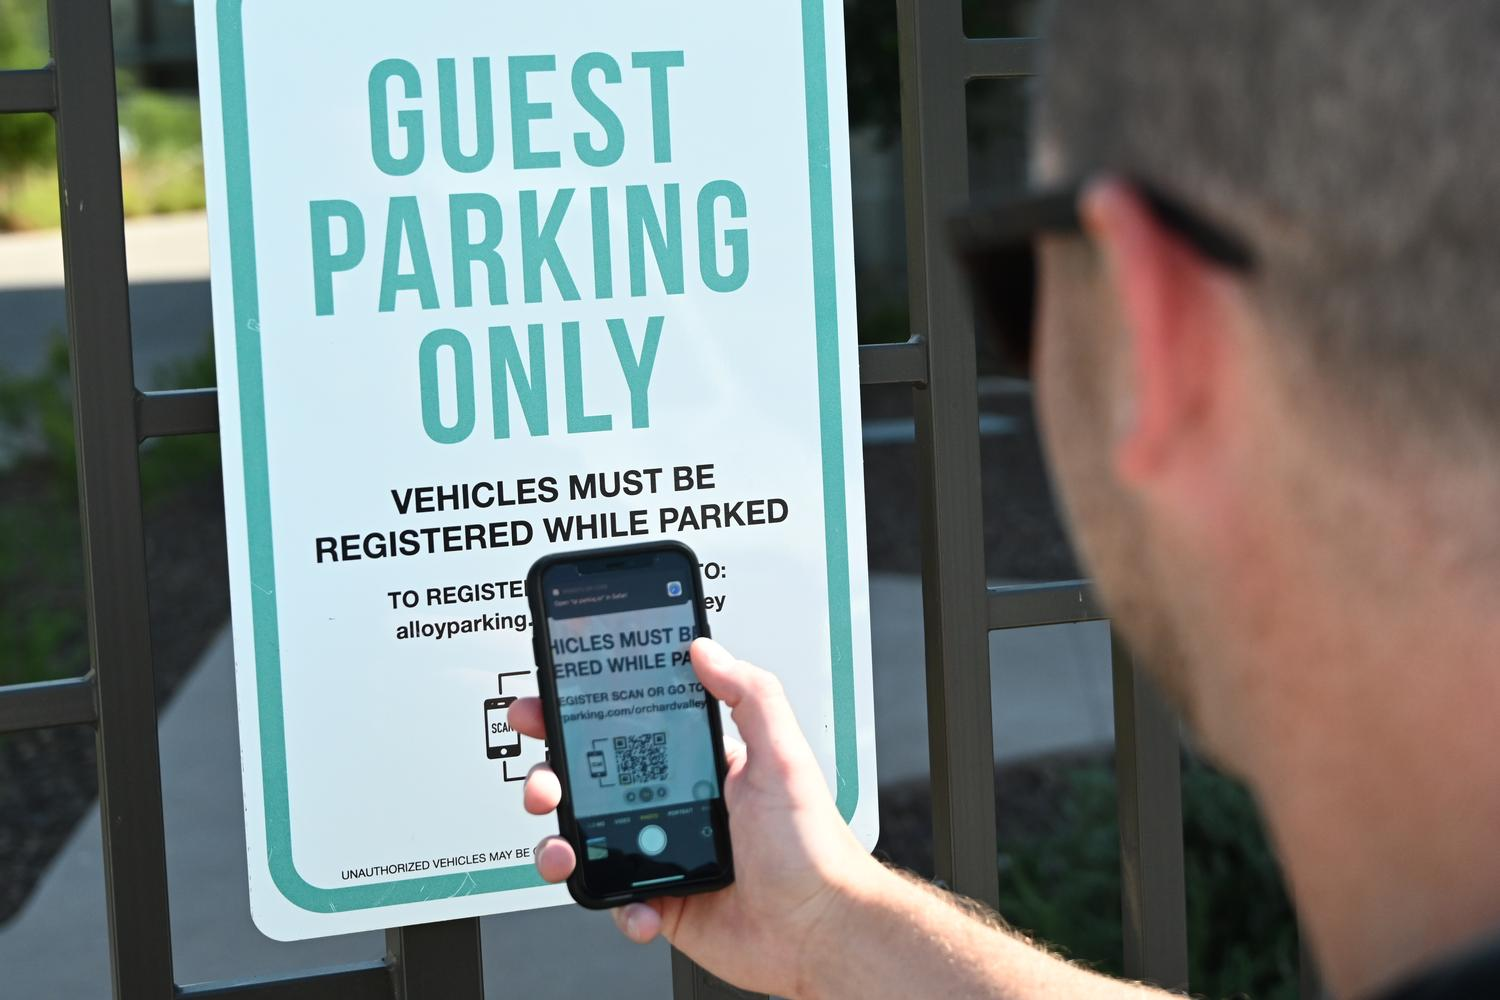 person scanning a guest parking sign with a QR code on smartphone